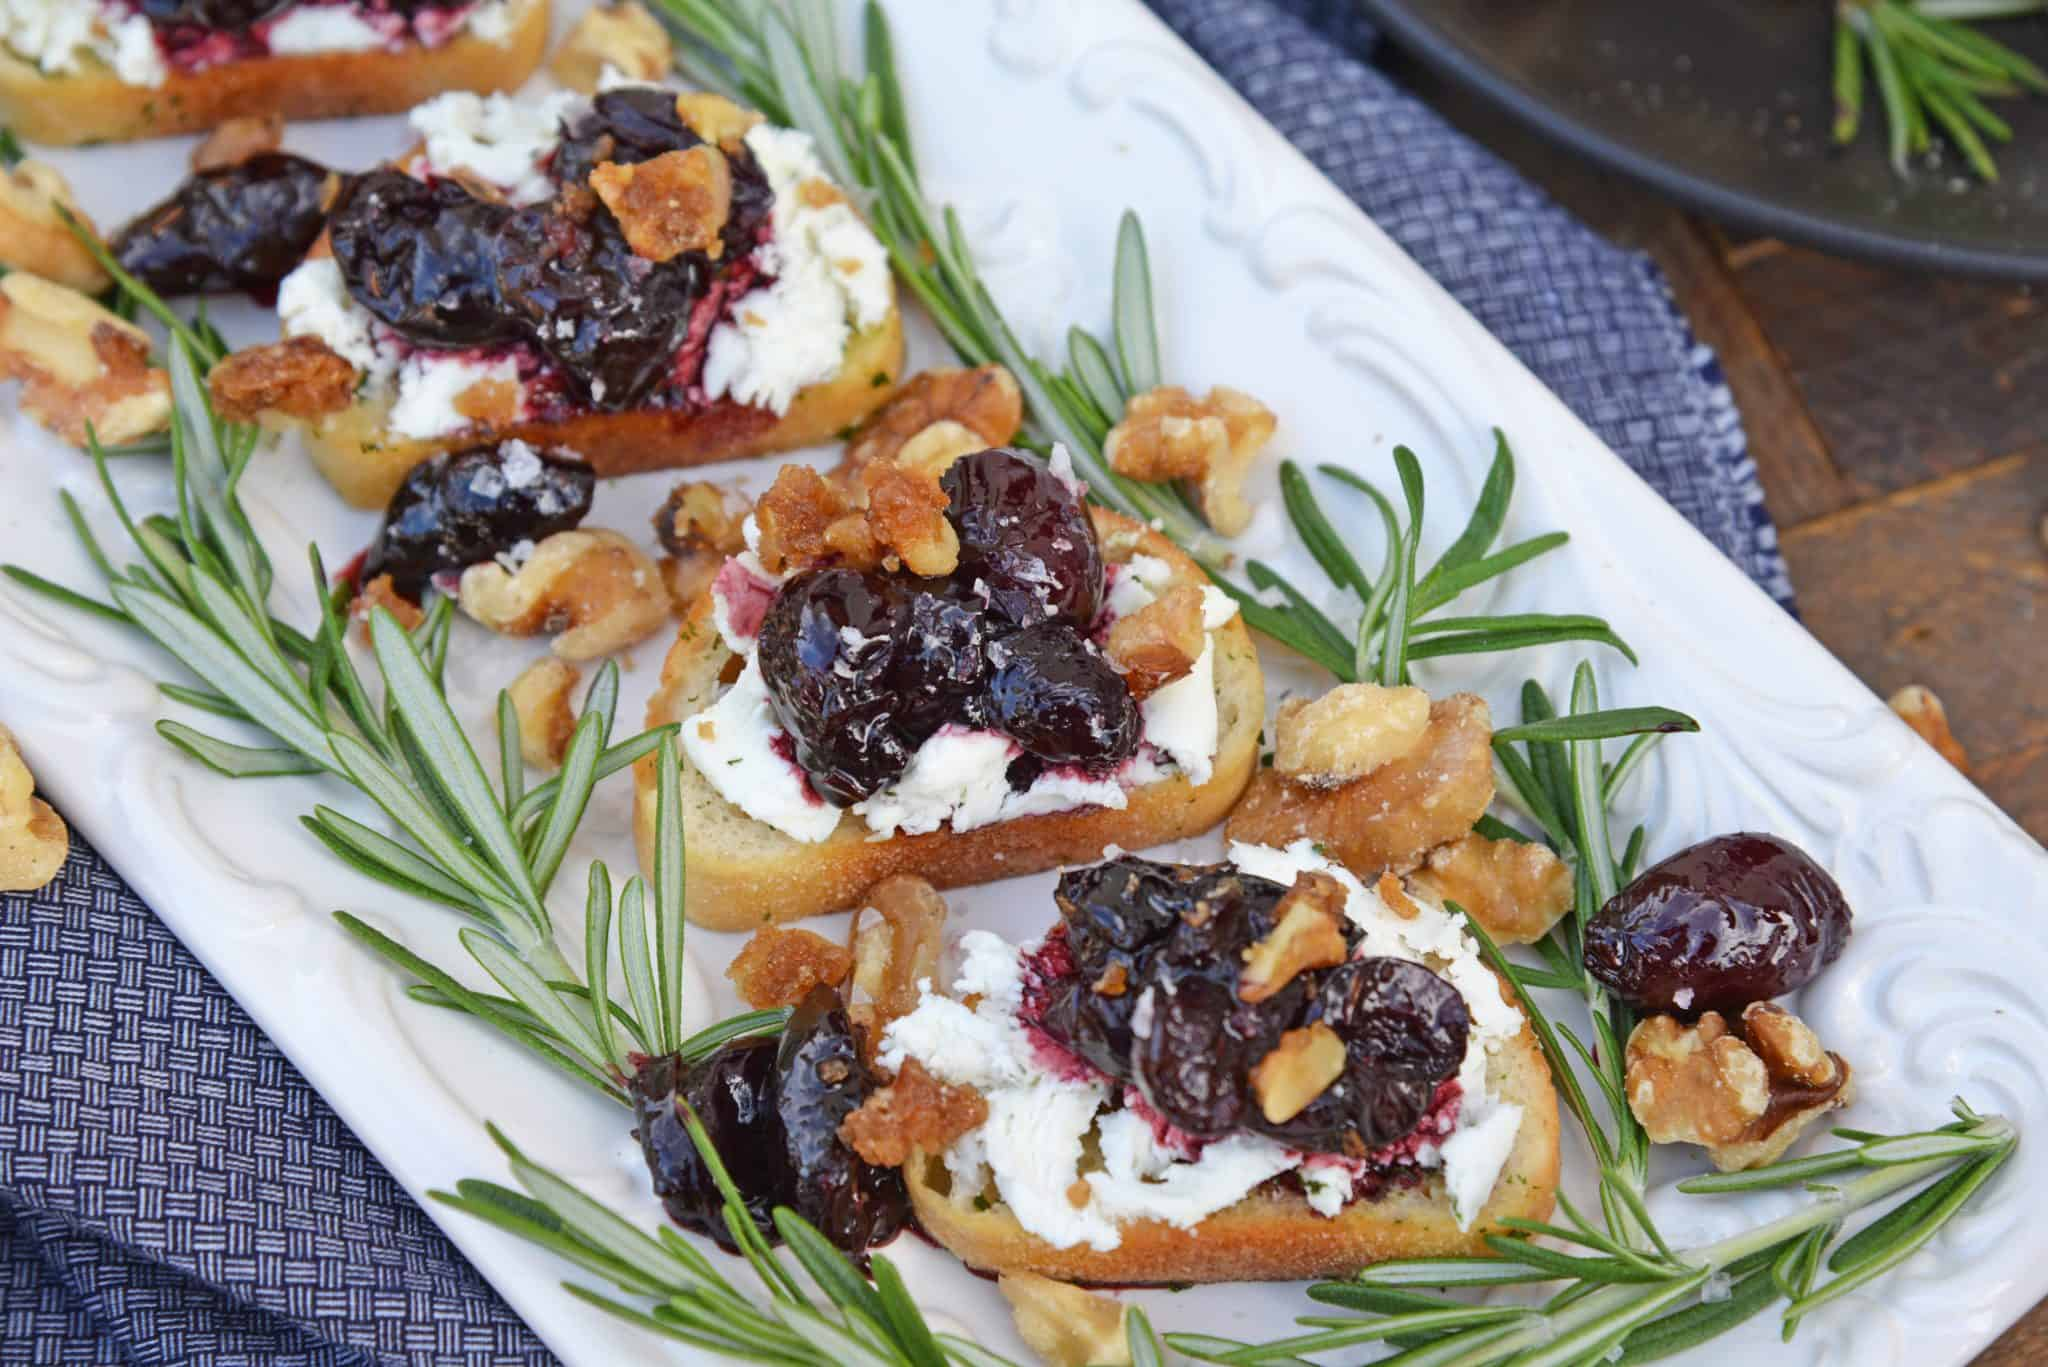 Balsamic Cherry Crostini is an easy appetizer using goat cheese and a tangy cherry balsamic reduction. The perfect holiday appetizer recipe! #crostinirecipes #easyappetizerrecipes www.savoryexperiments.com